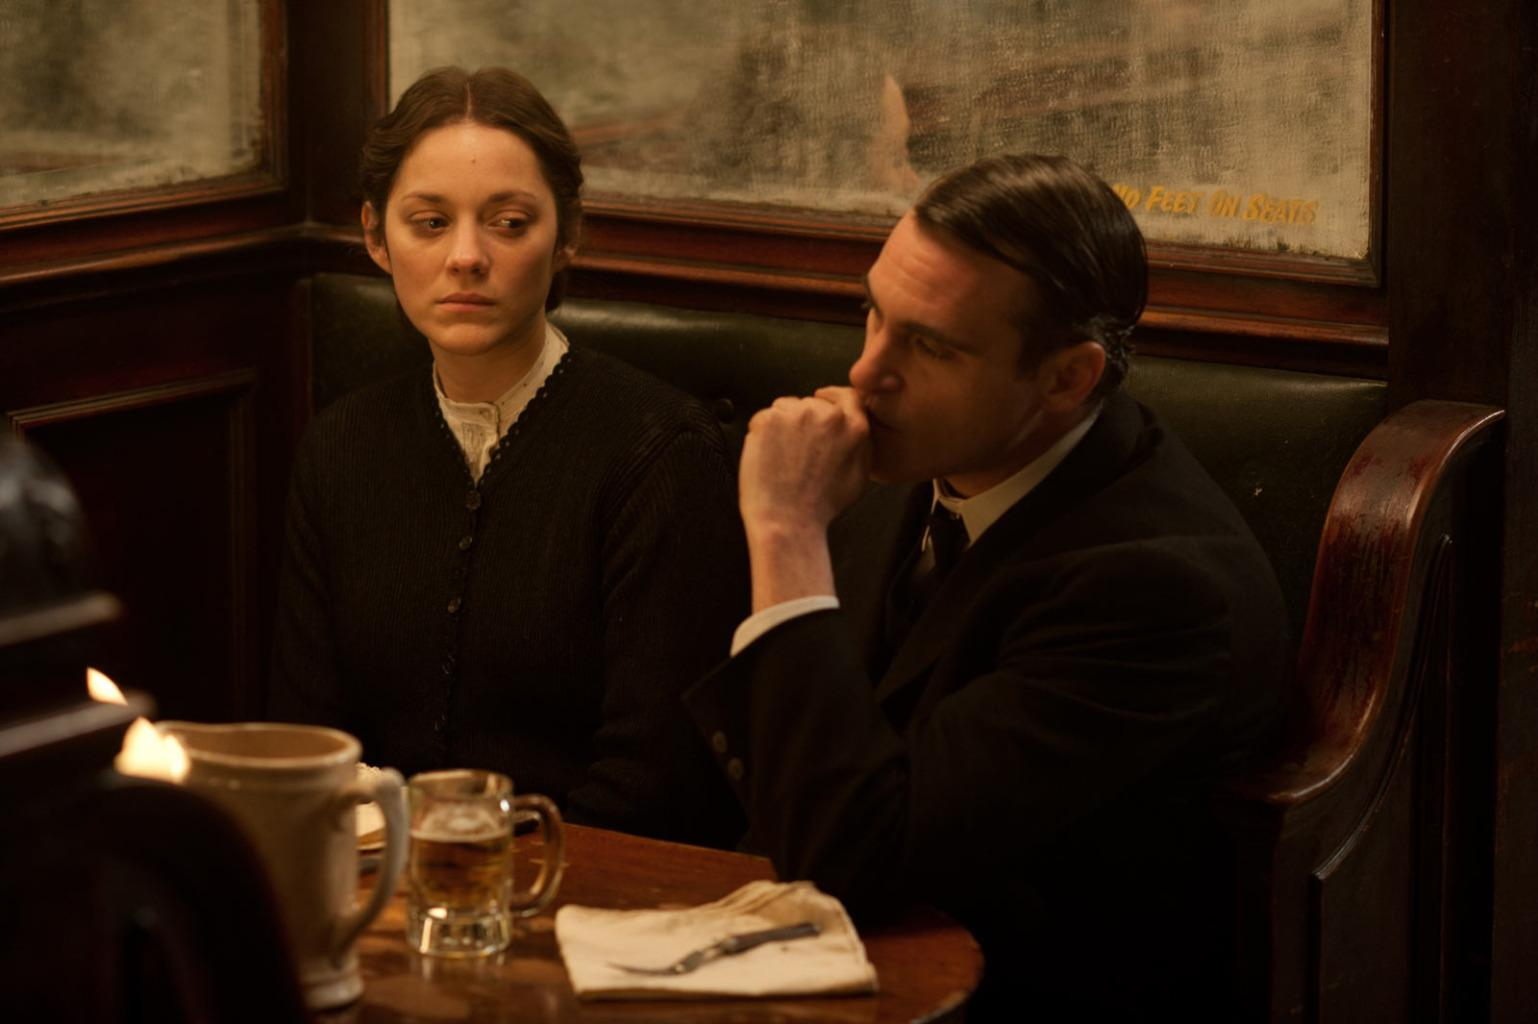 The Immigrant, de James Gray – Compétition Officielle